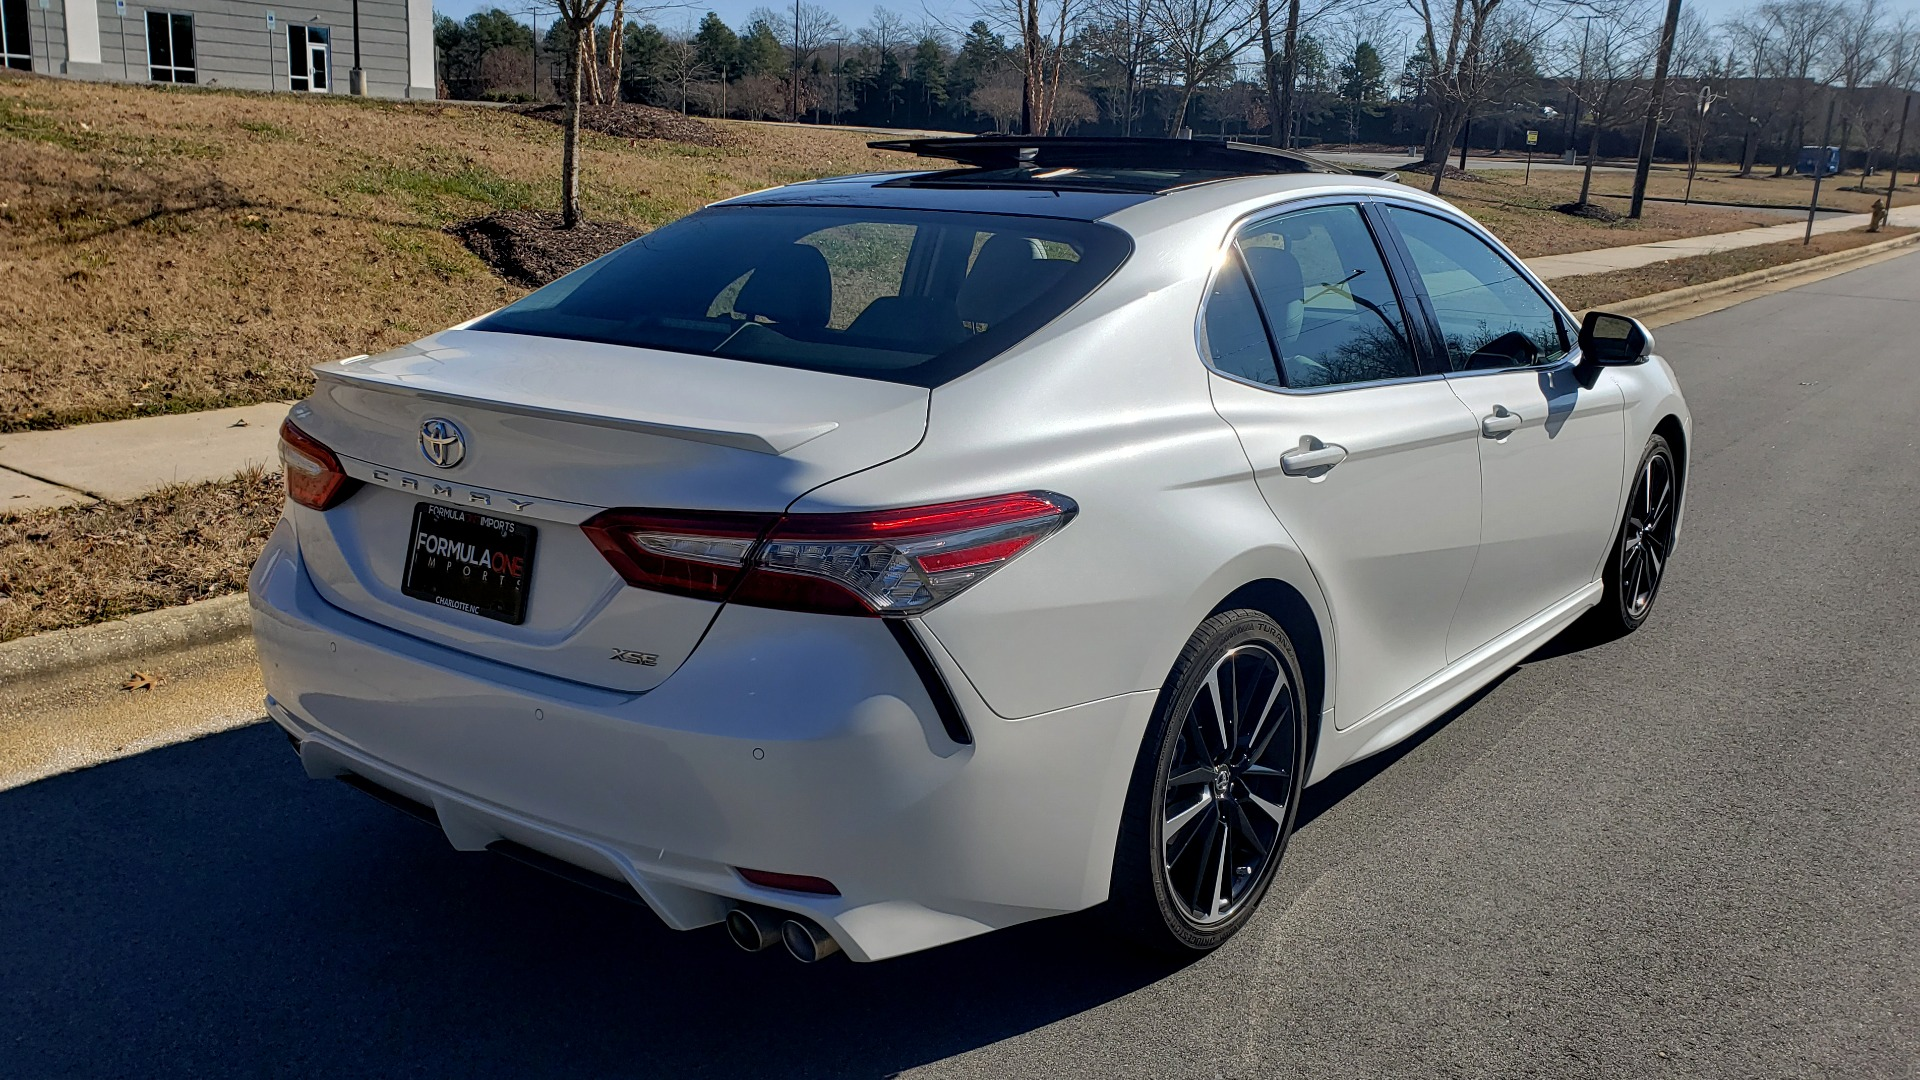 Used 2018 Toyota CAMRY XSE 2.5L SEDAN / 8-SPD AUTO / PANO-ROOF / 19IN WHEELS for sale $22,995 at Formula Imports in Charlotte NC 28227 8